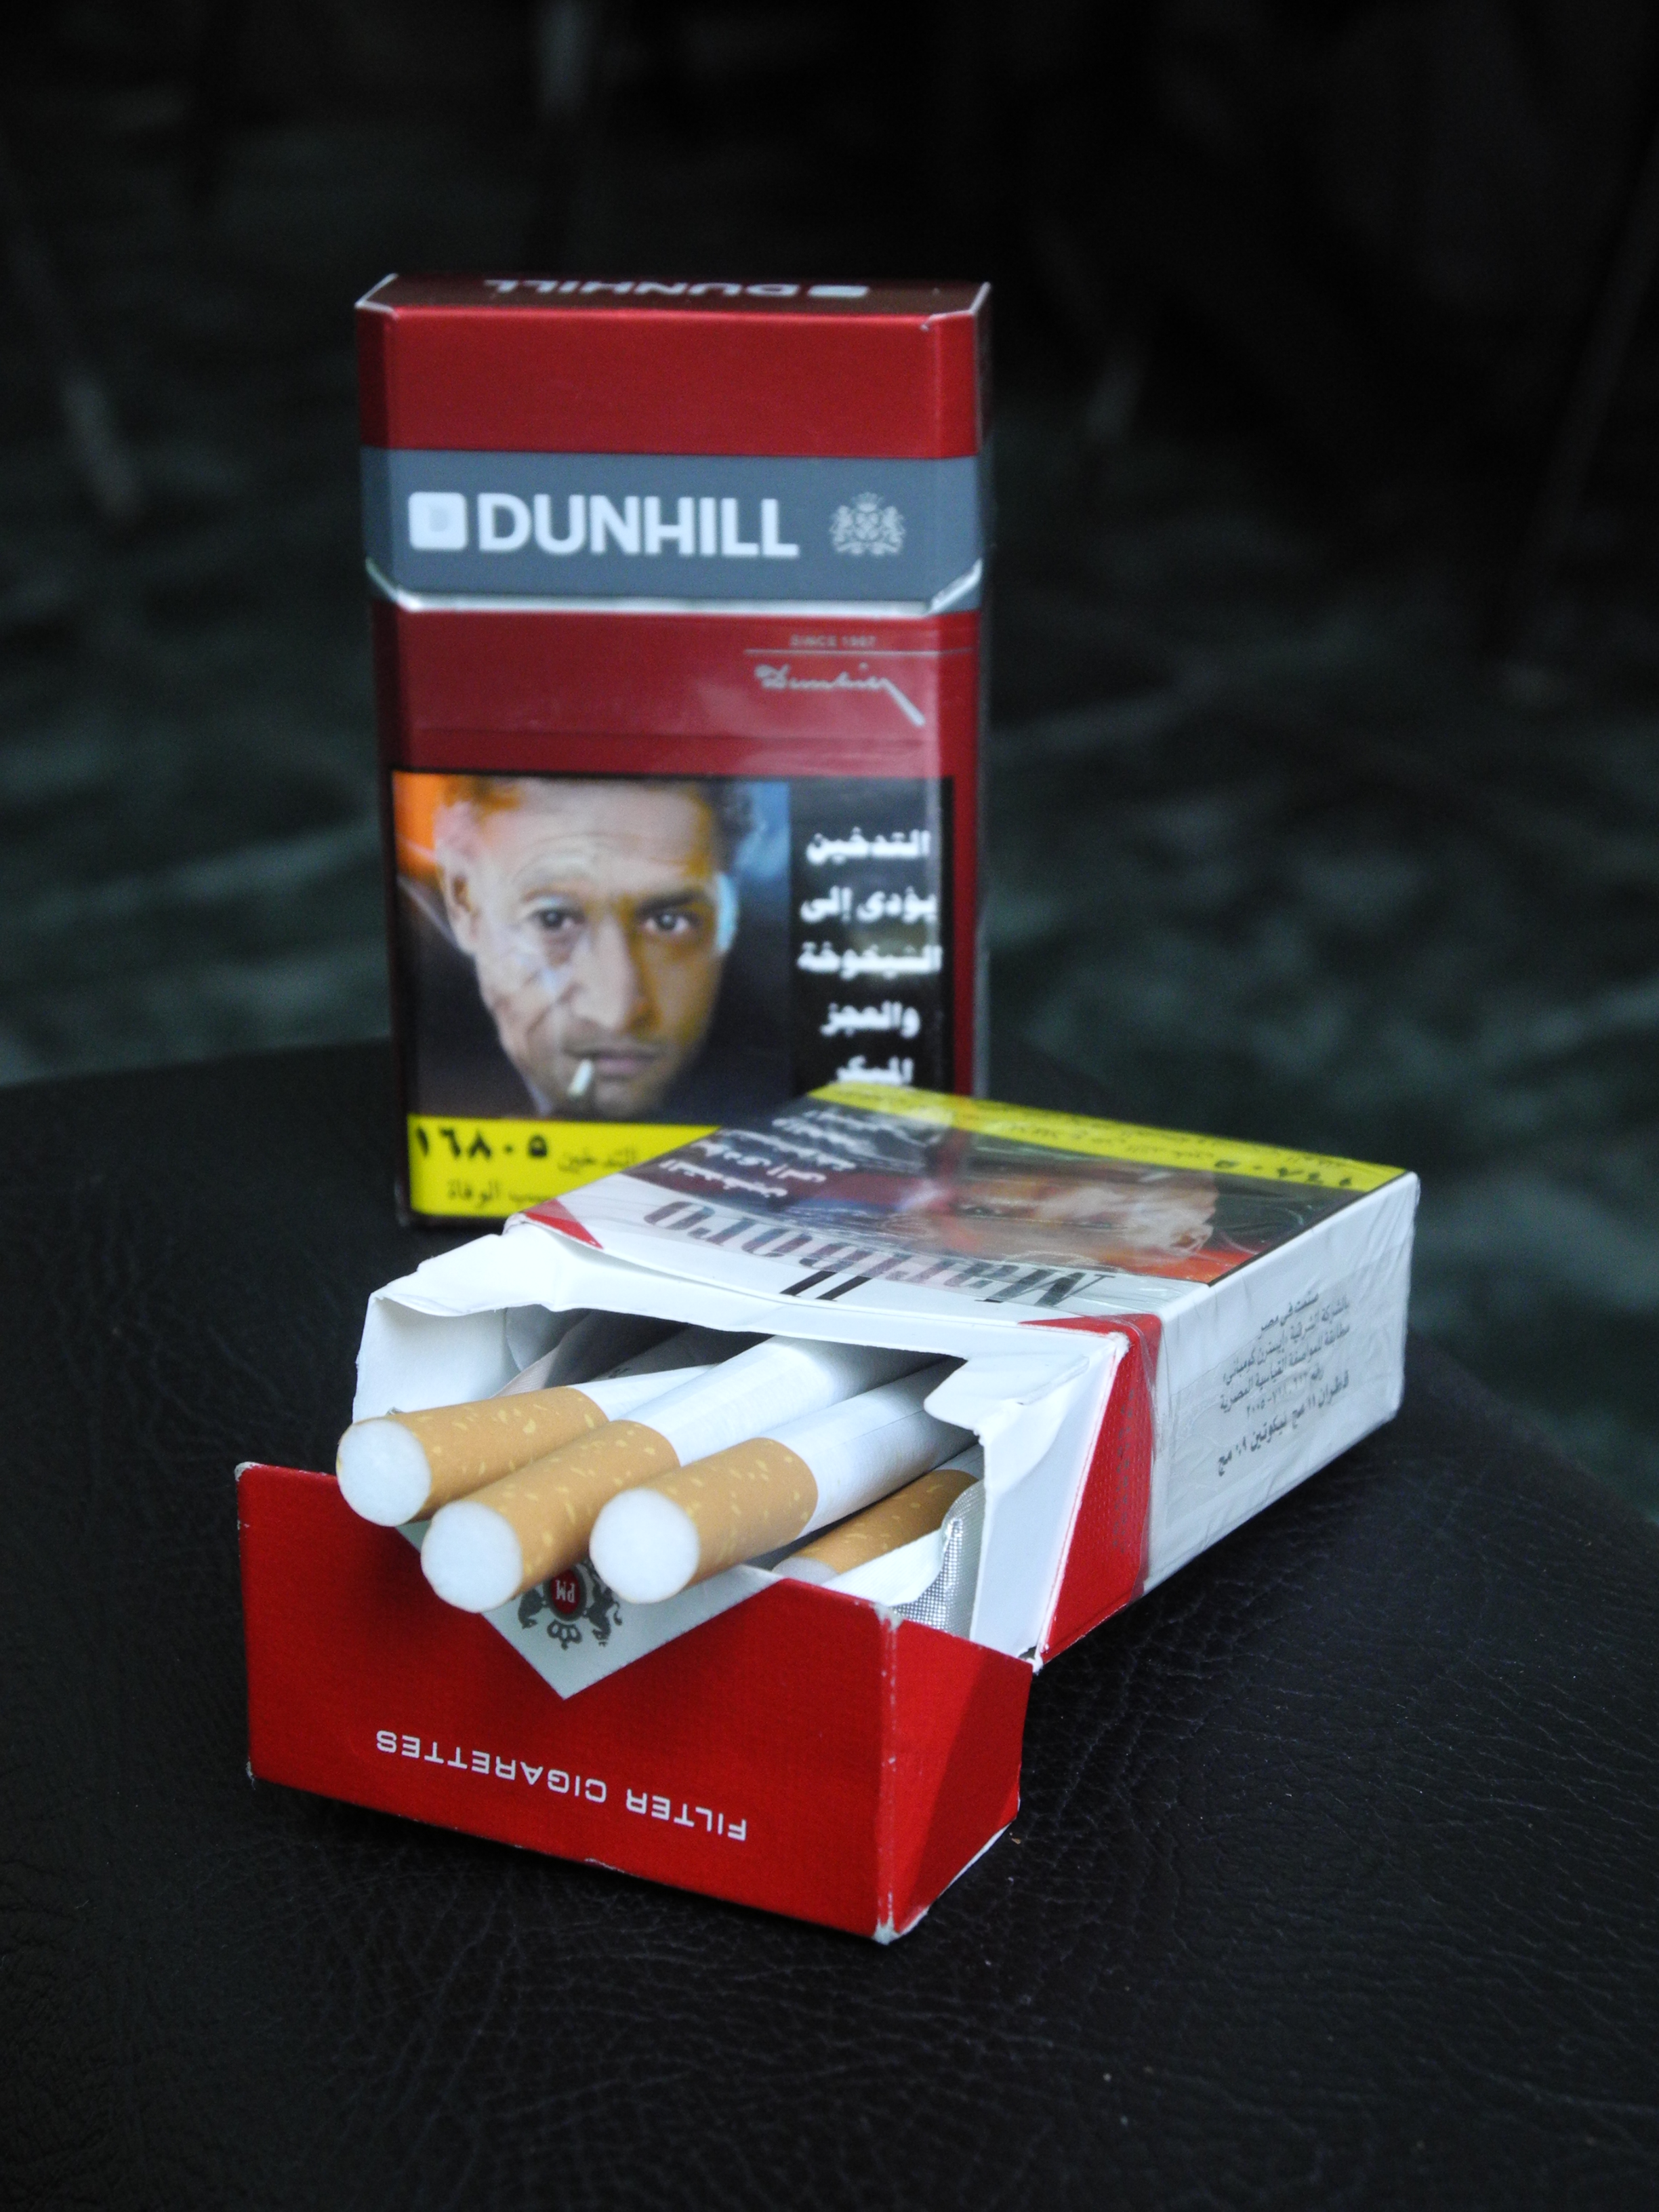 The head of the Tobacco Division at the FEI accuses the Government of singling out the industry, following proposed tax increases on tobacco products (Photo by Laurence Underhill)